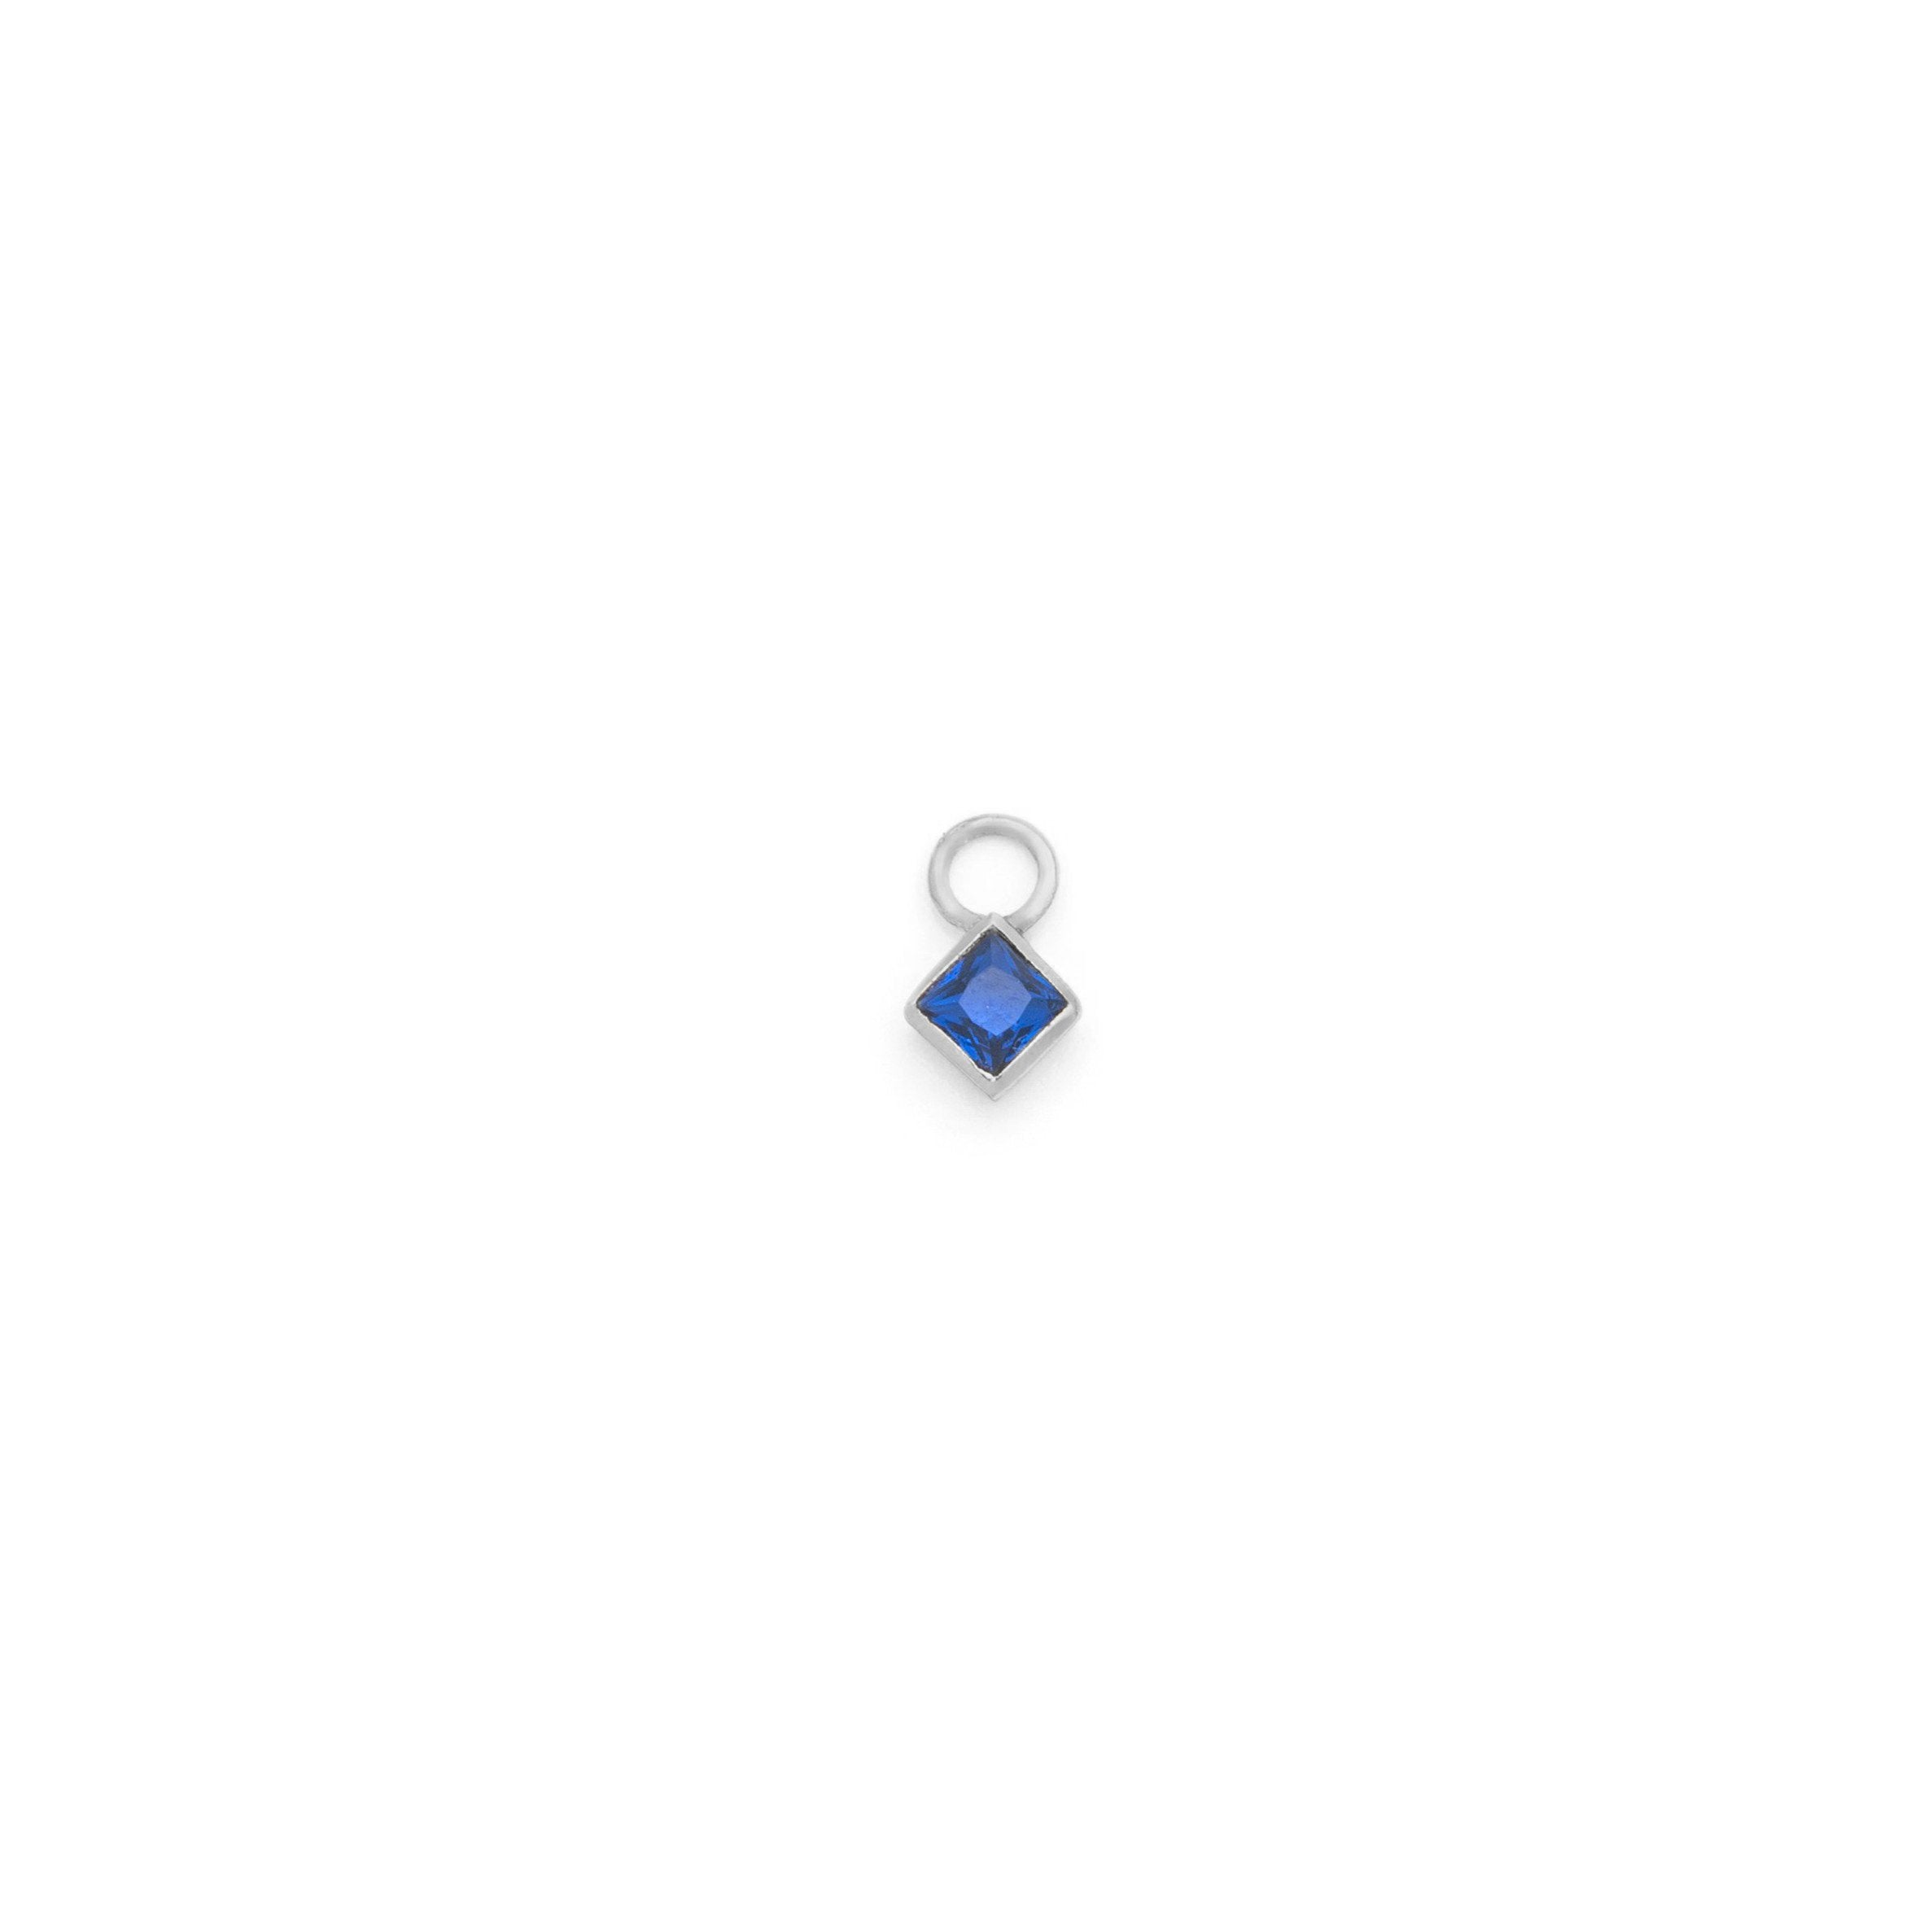 Single Blue Spark Earring Charm - Sterling Silver